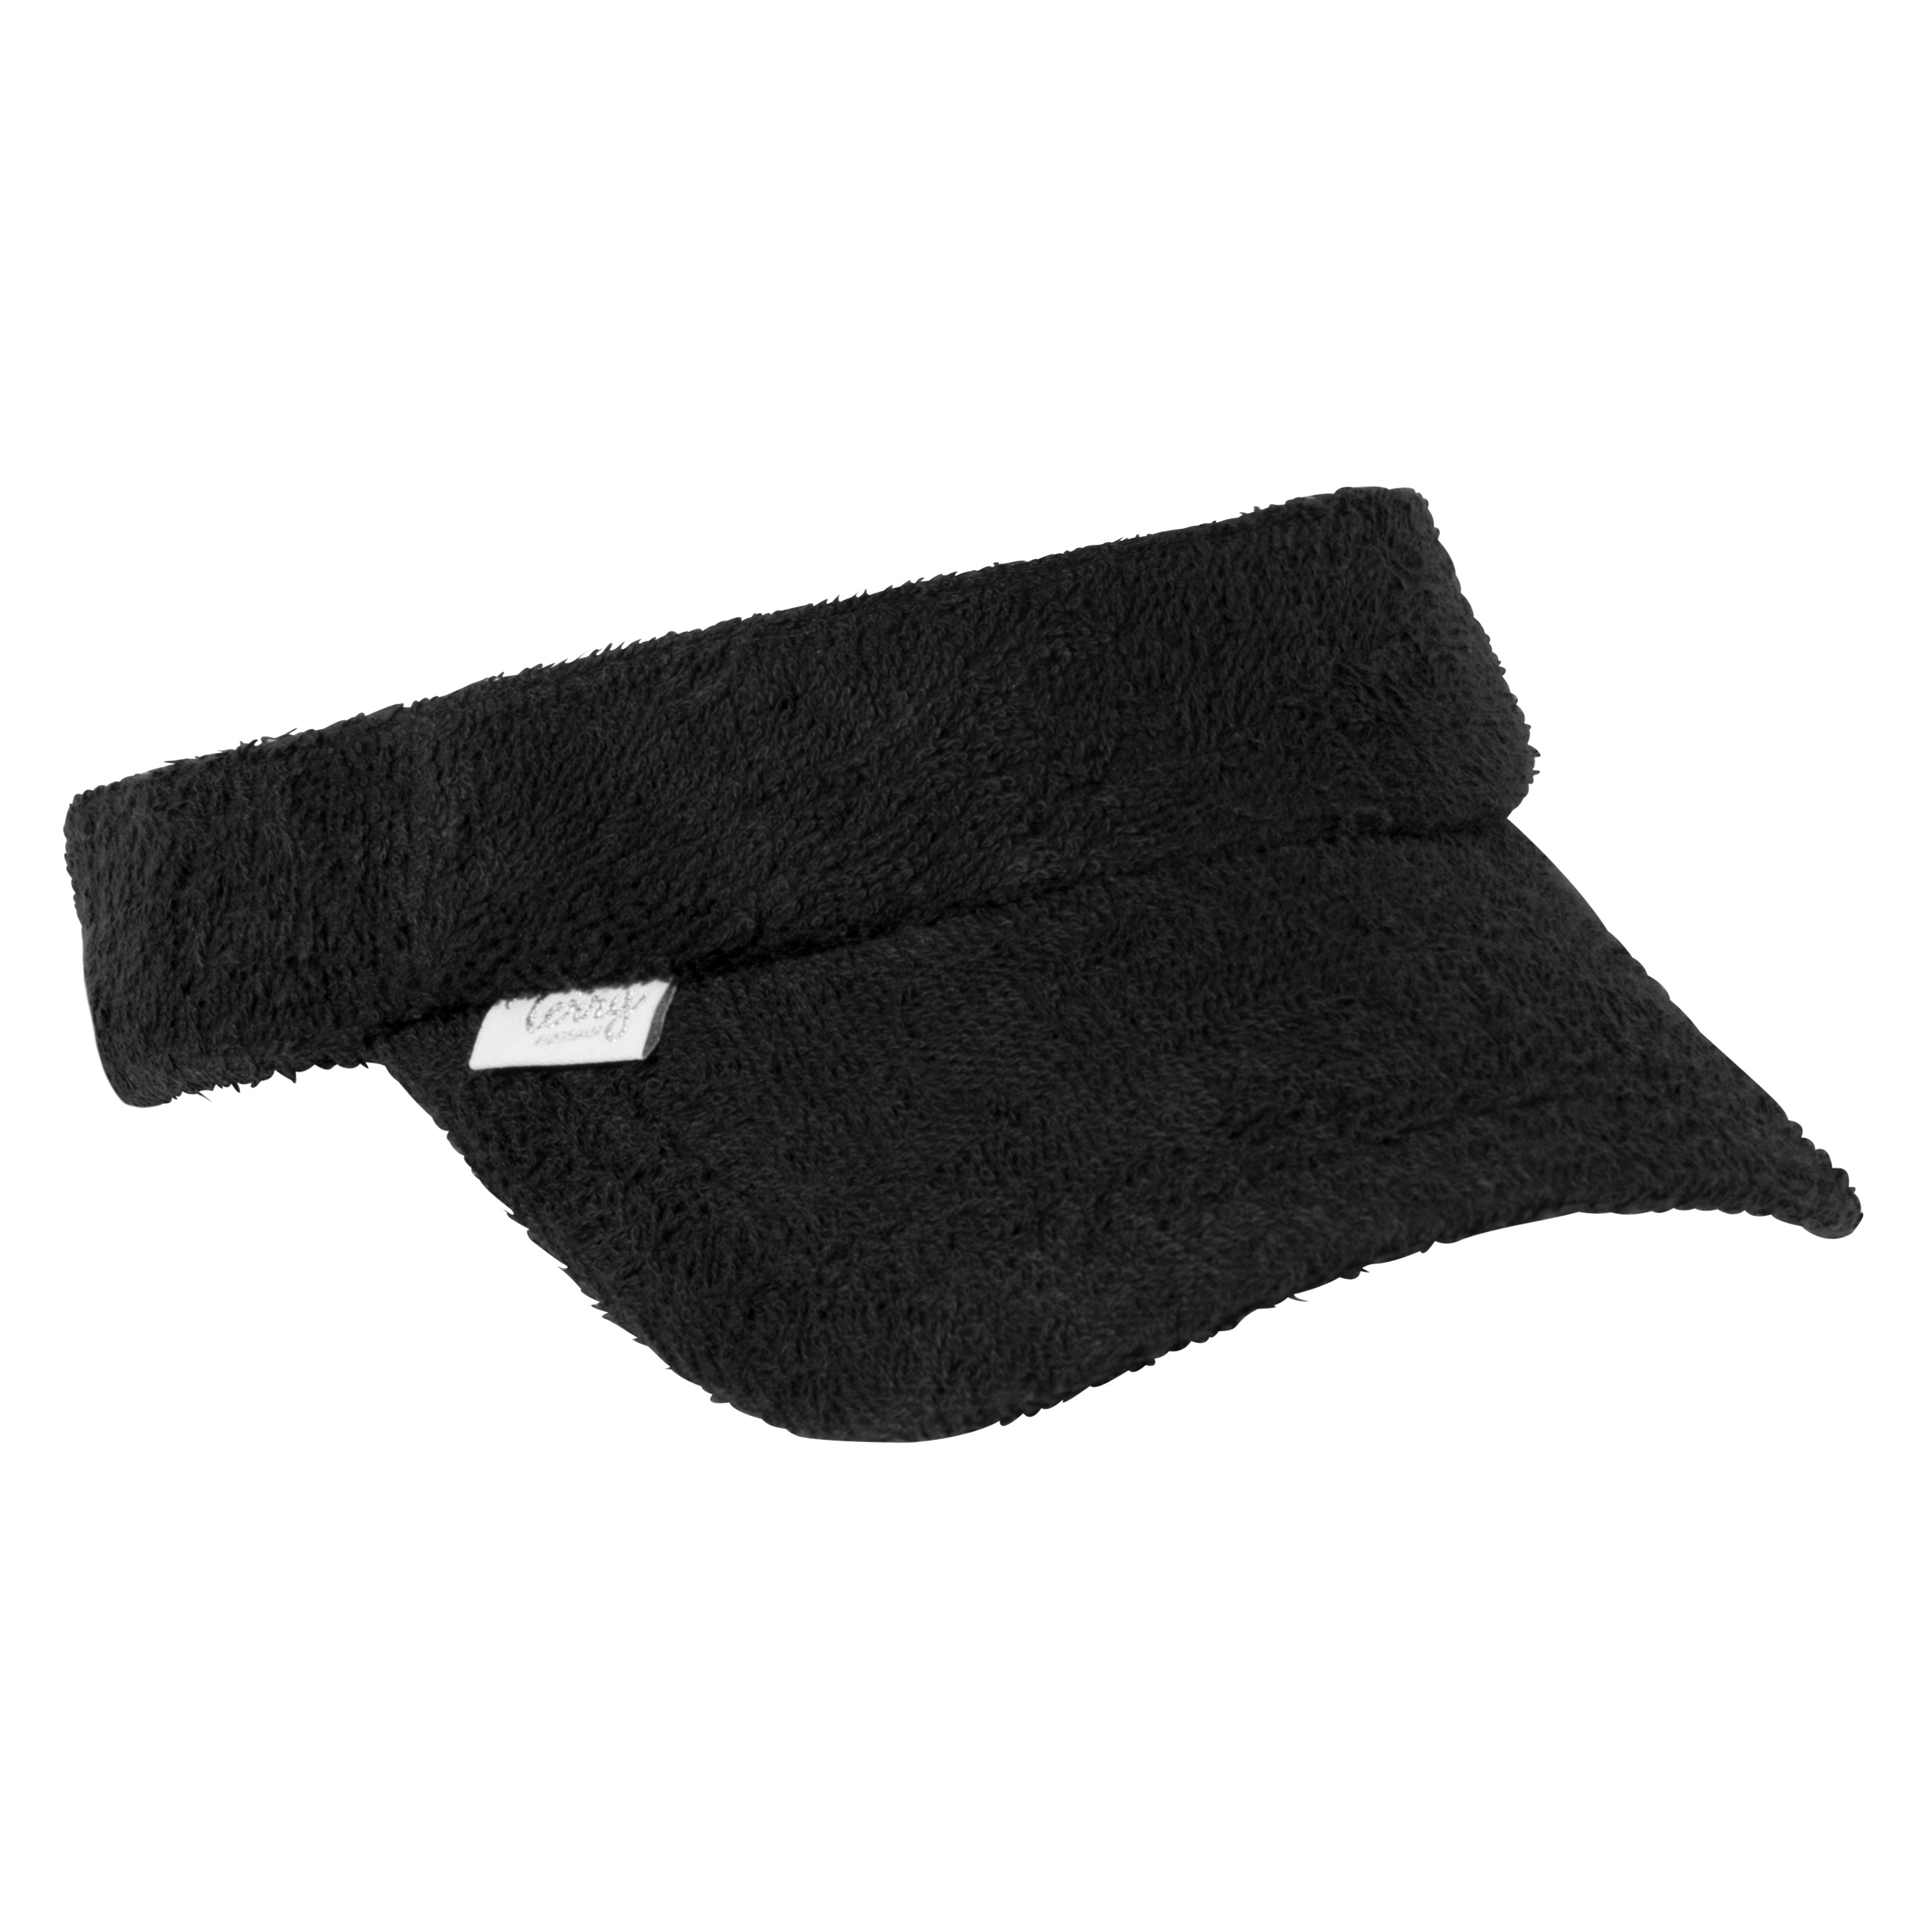 Black Terry Towelling Visor - The Terry Australia